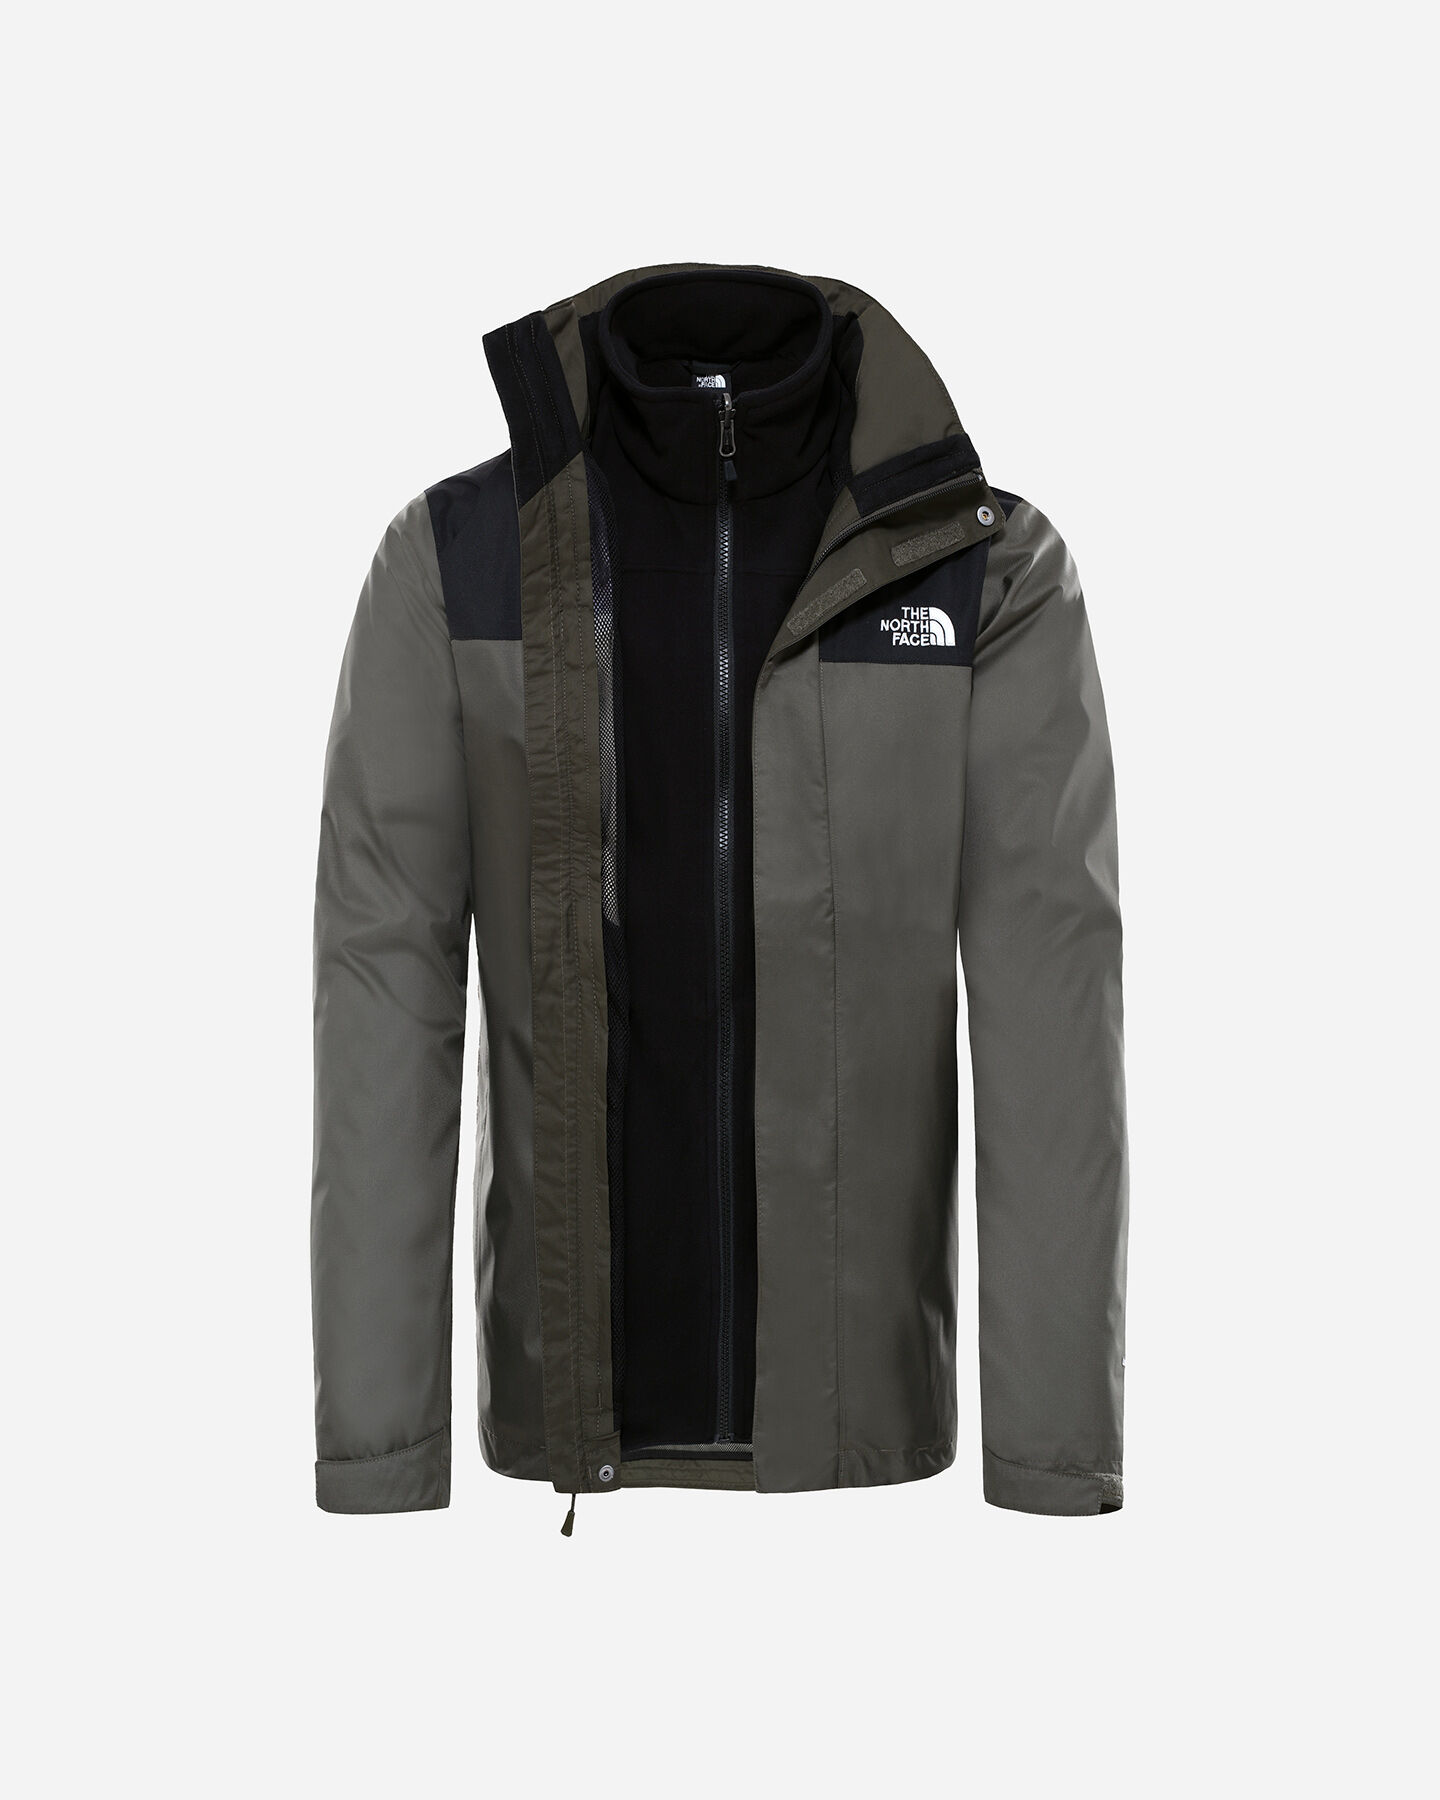 Giacca outdoor THE NORTH FACE EVOLVE II TRICLIMATE M S1283858 scatto 1